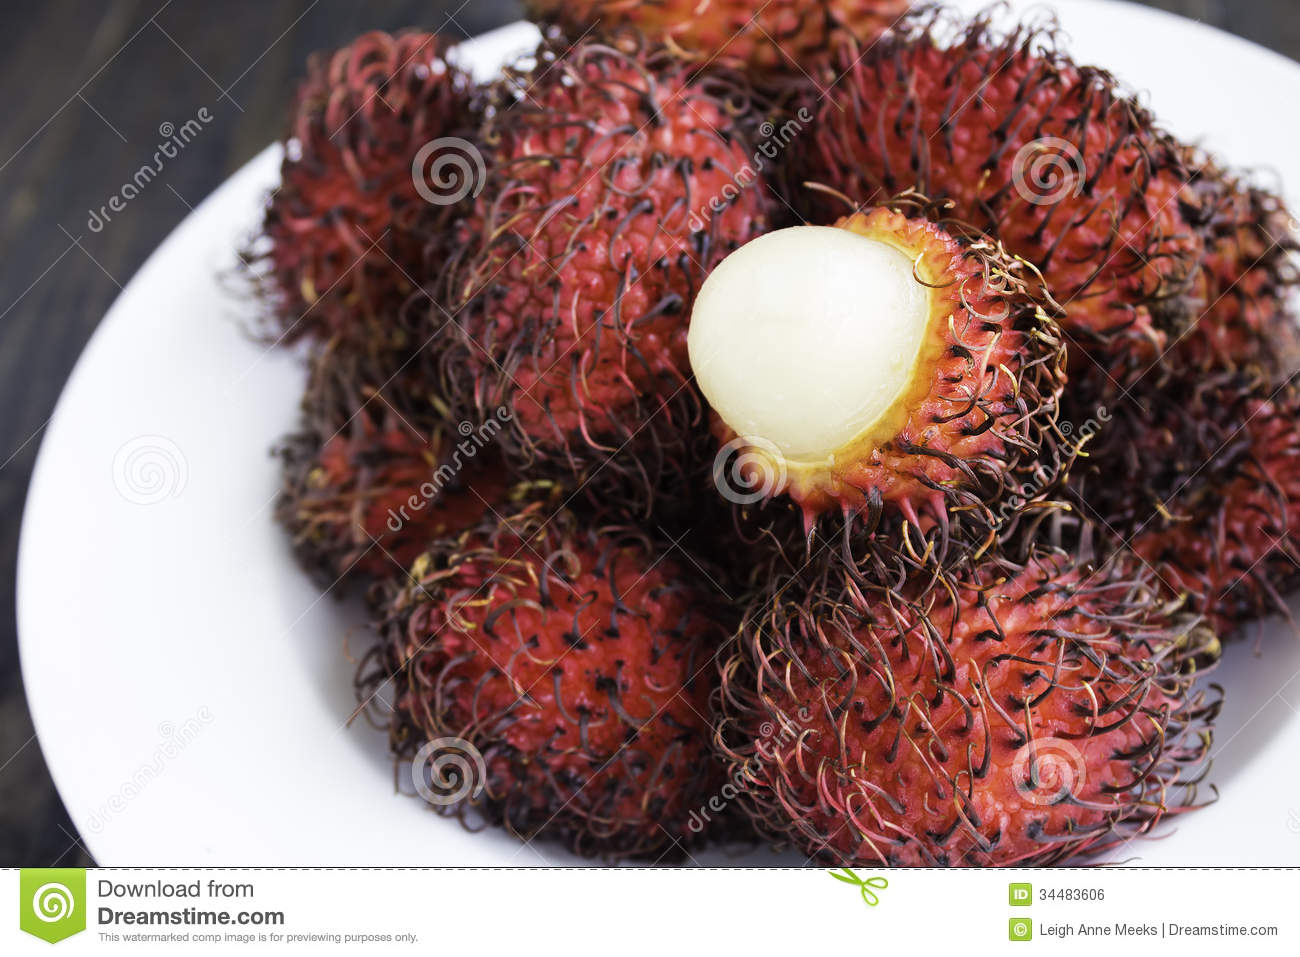 Rambutan Royalty Free Stock Image.